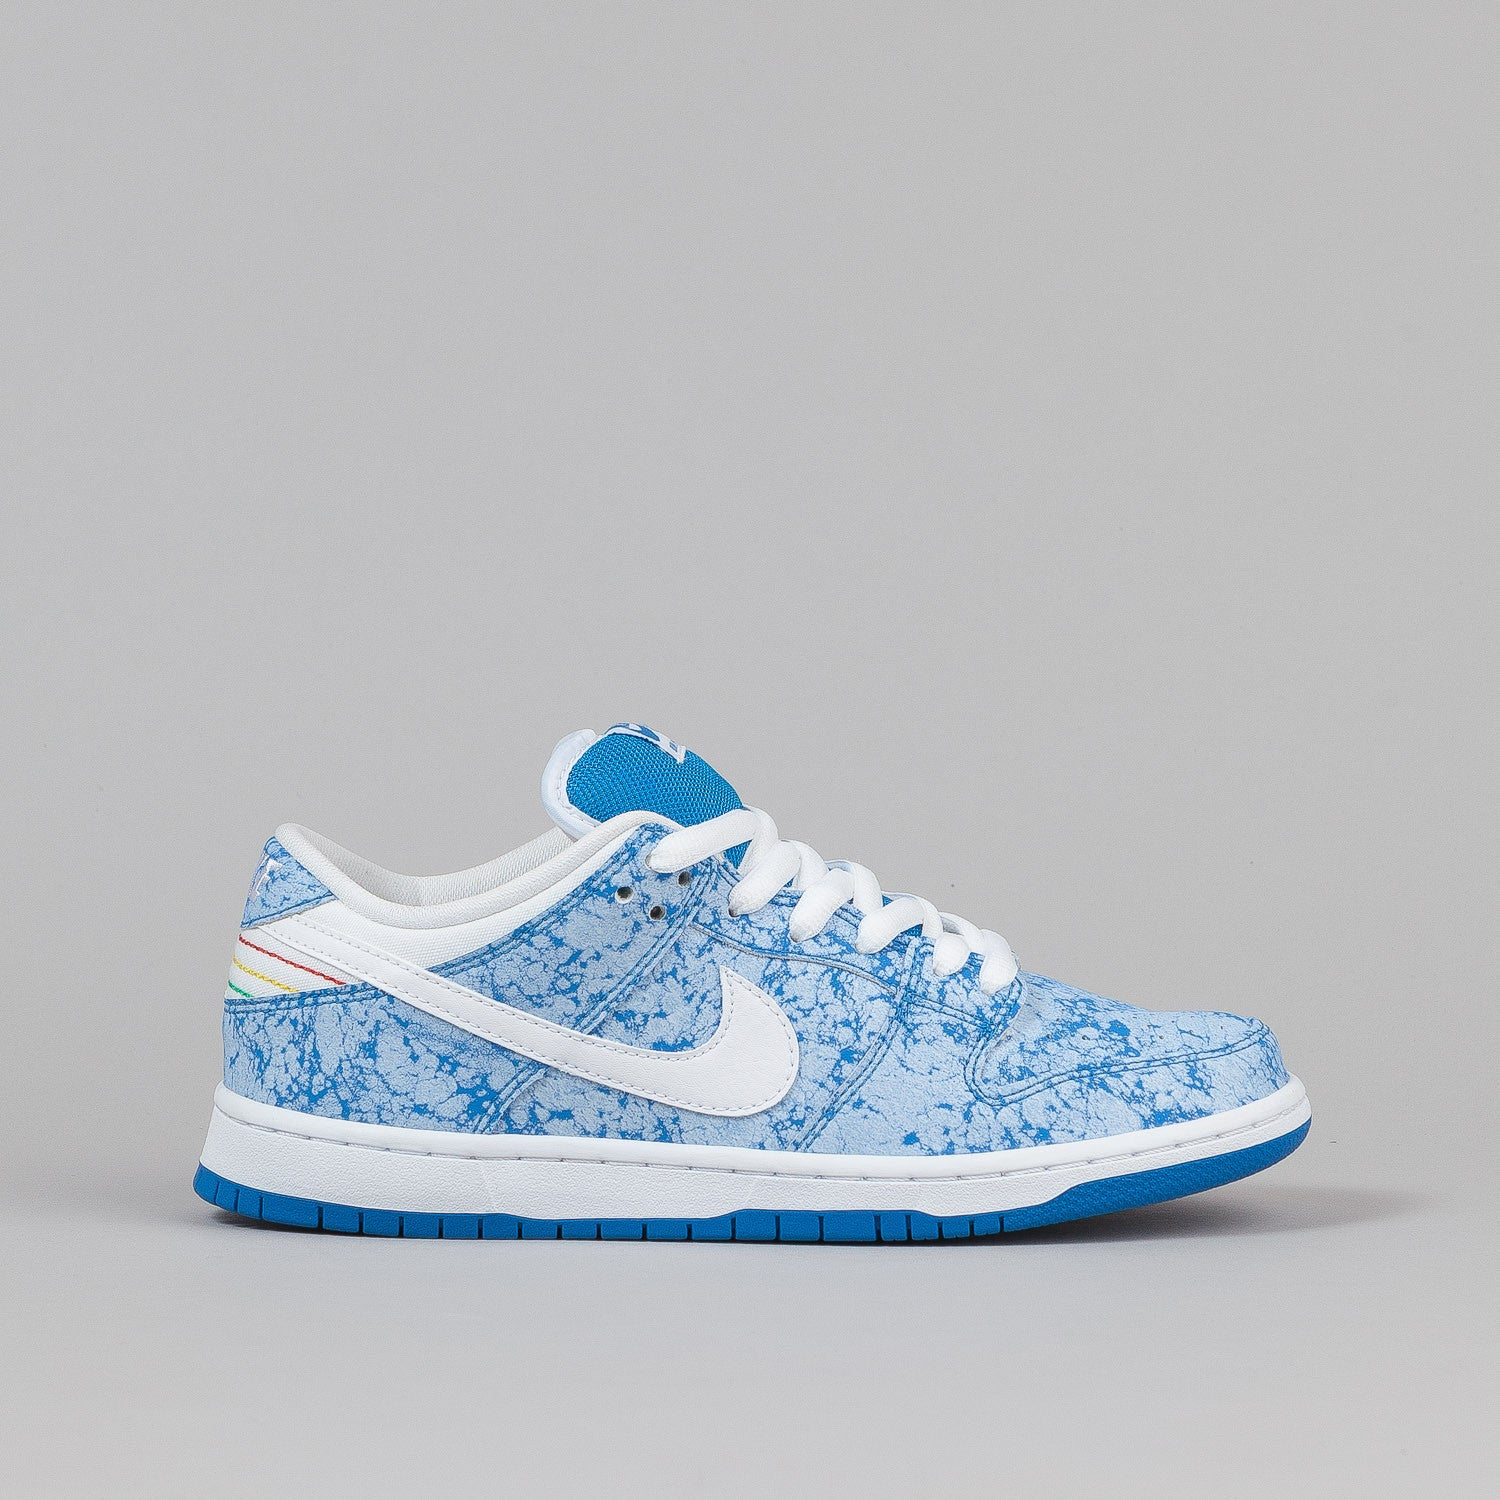 Nike SB Dunk Low Premium Shoes